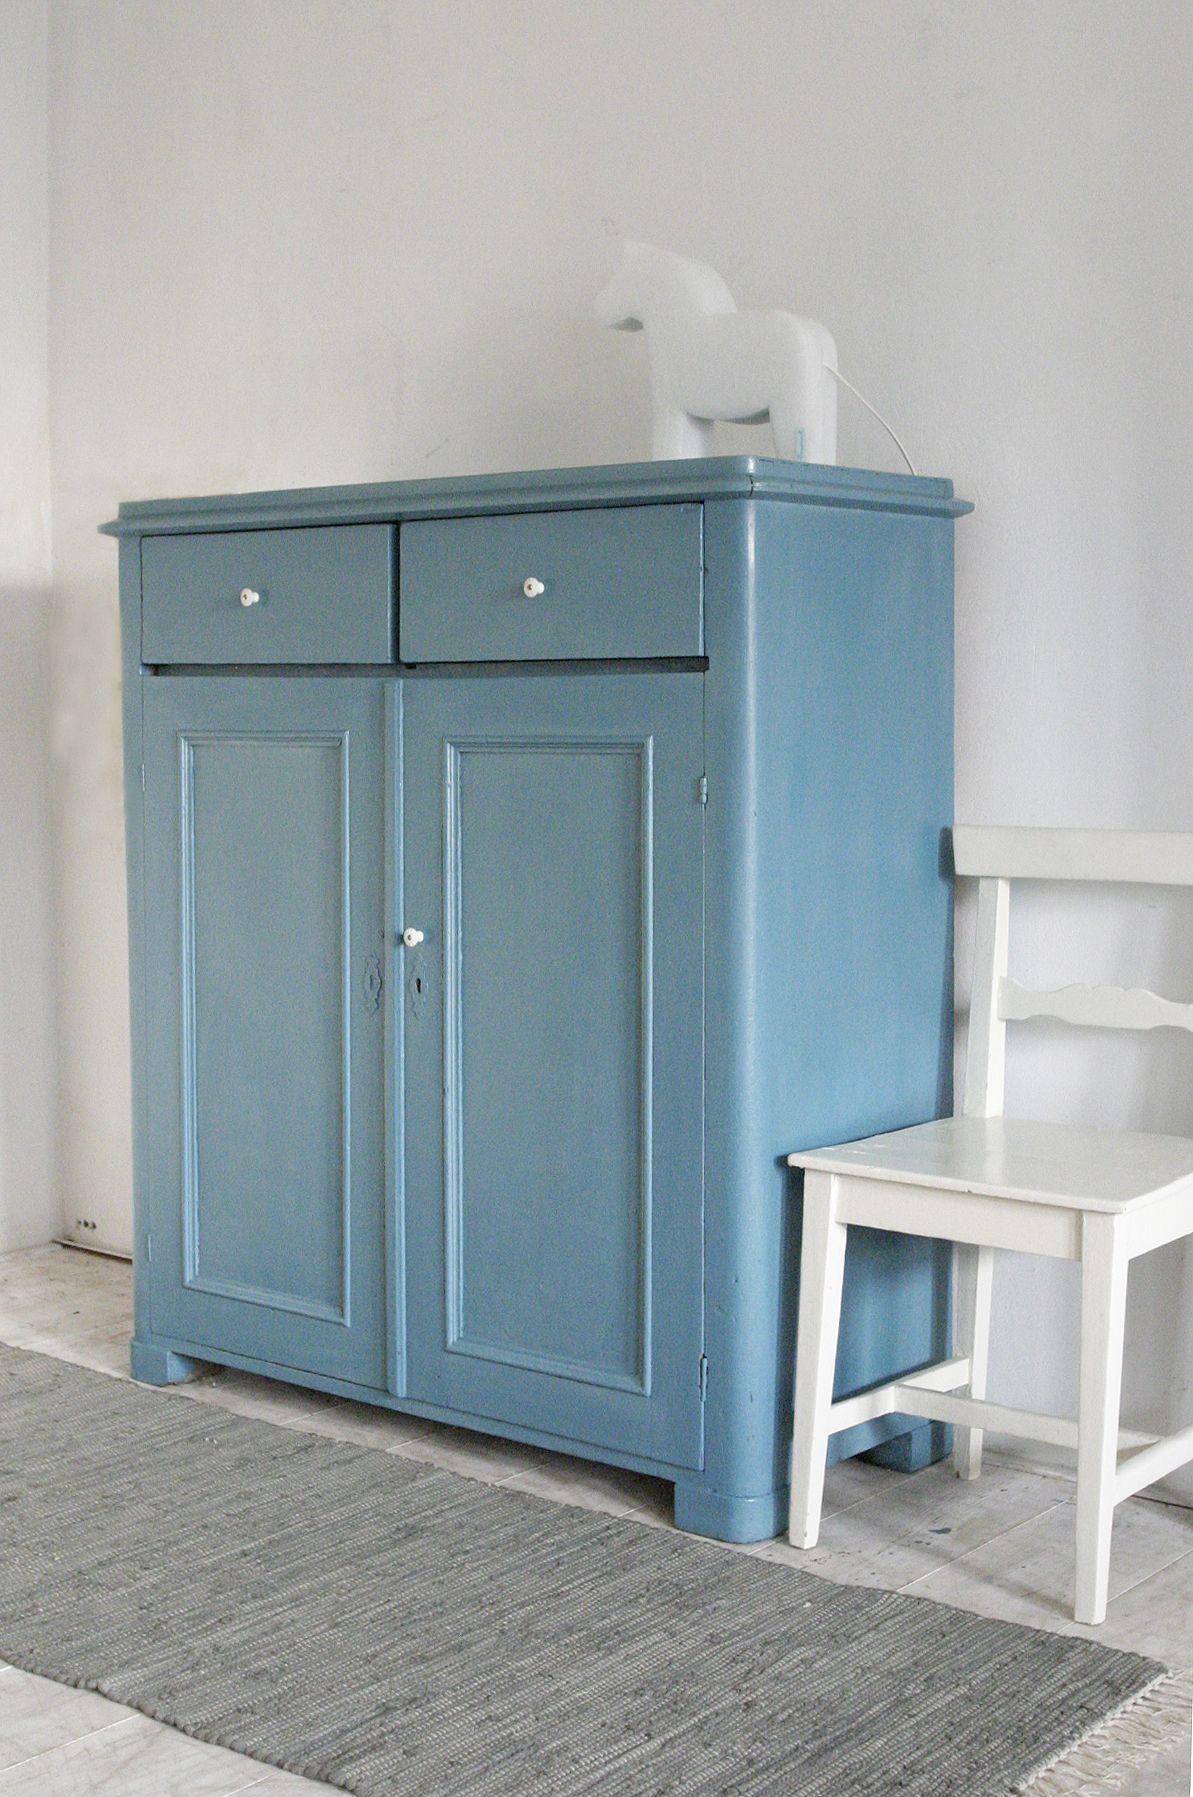 Old Swedish Cupboard Repainted With Allbäck Linseed Oilpaint